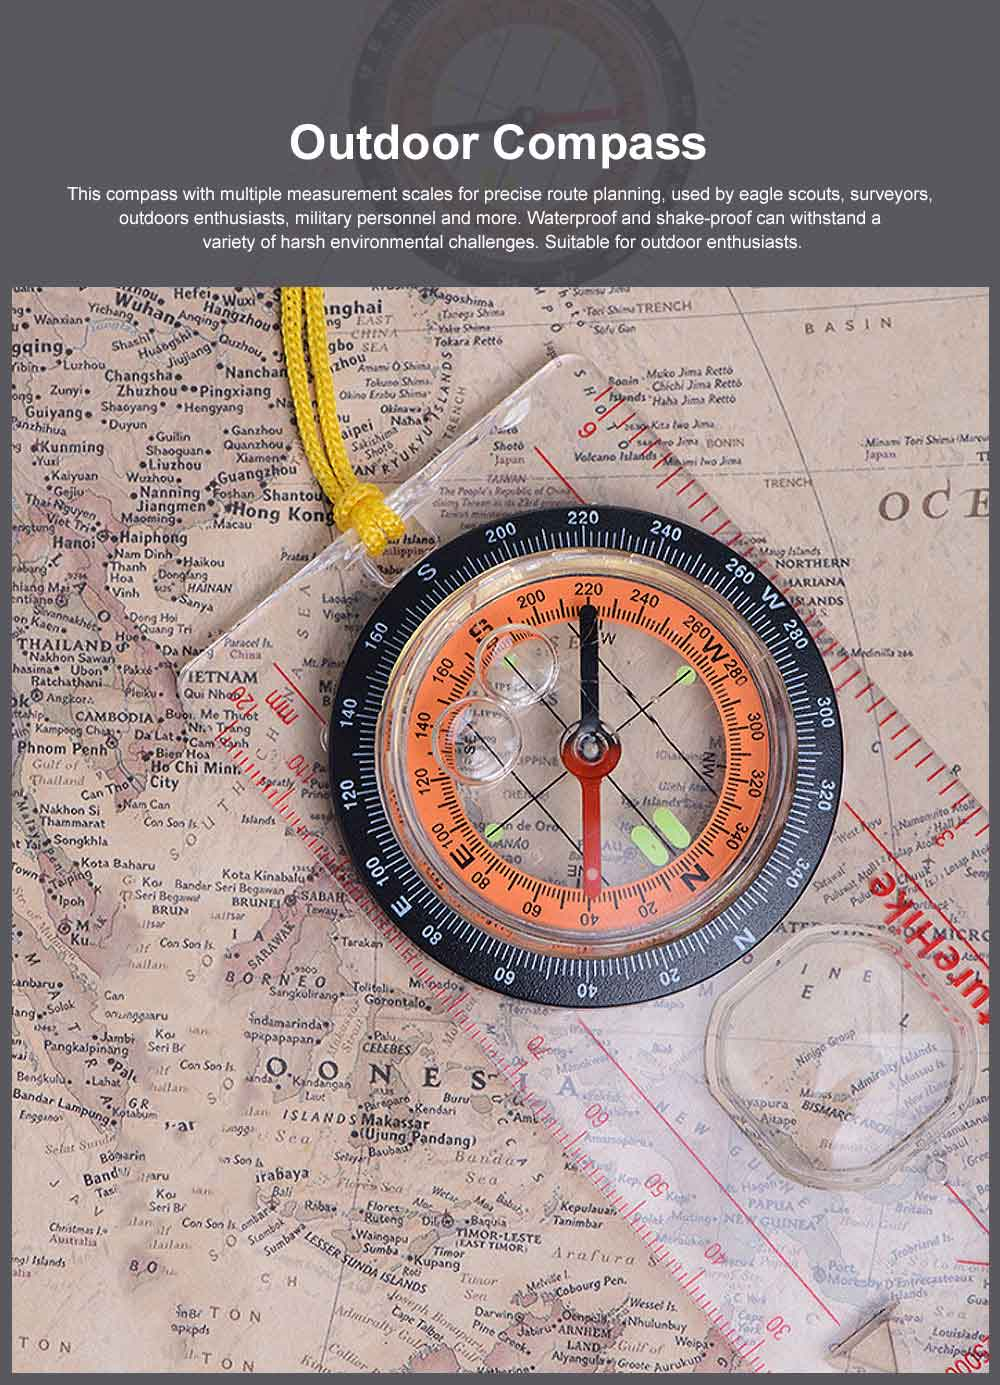 Outdoor Compass for Camping, Hiking, Portable Compass Multifunctional Geologic Luminous Compass with Magnifier 0